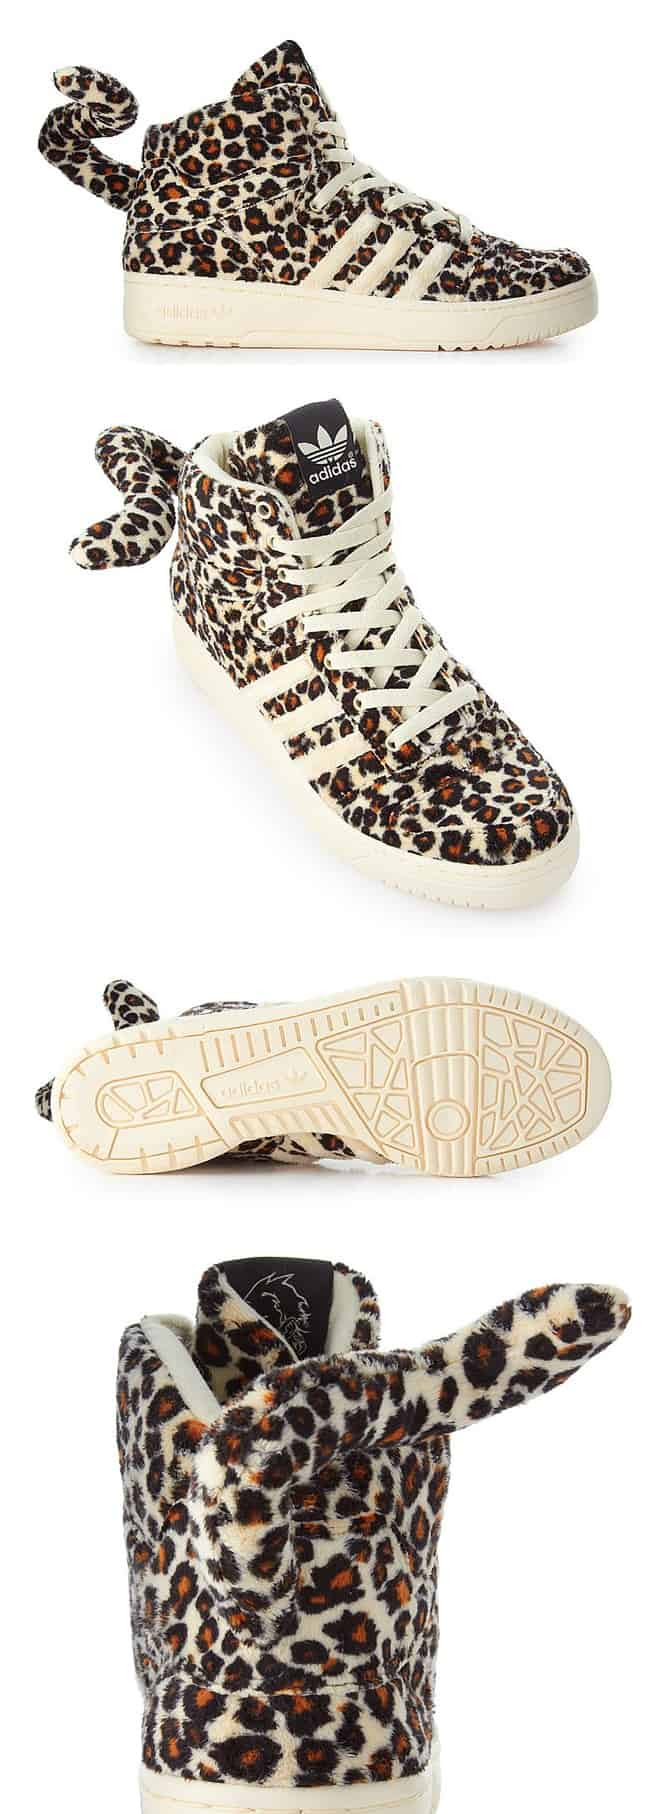 Adidas X Jeremy Scott Leopard Tail Sneakers